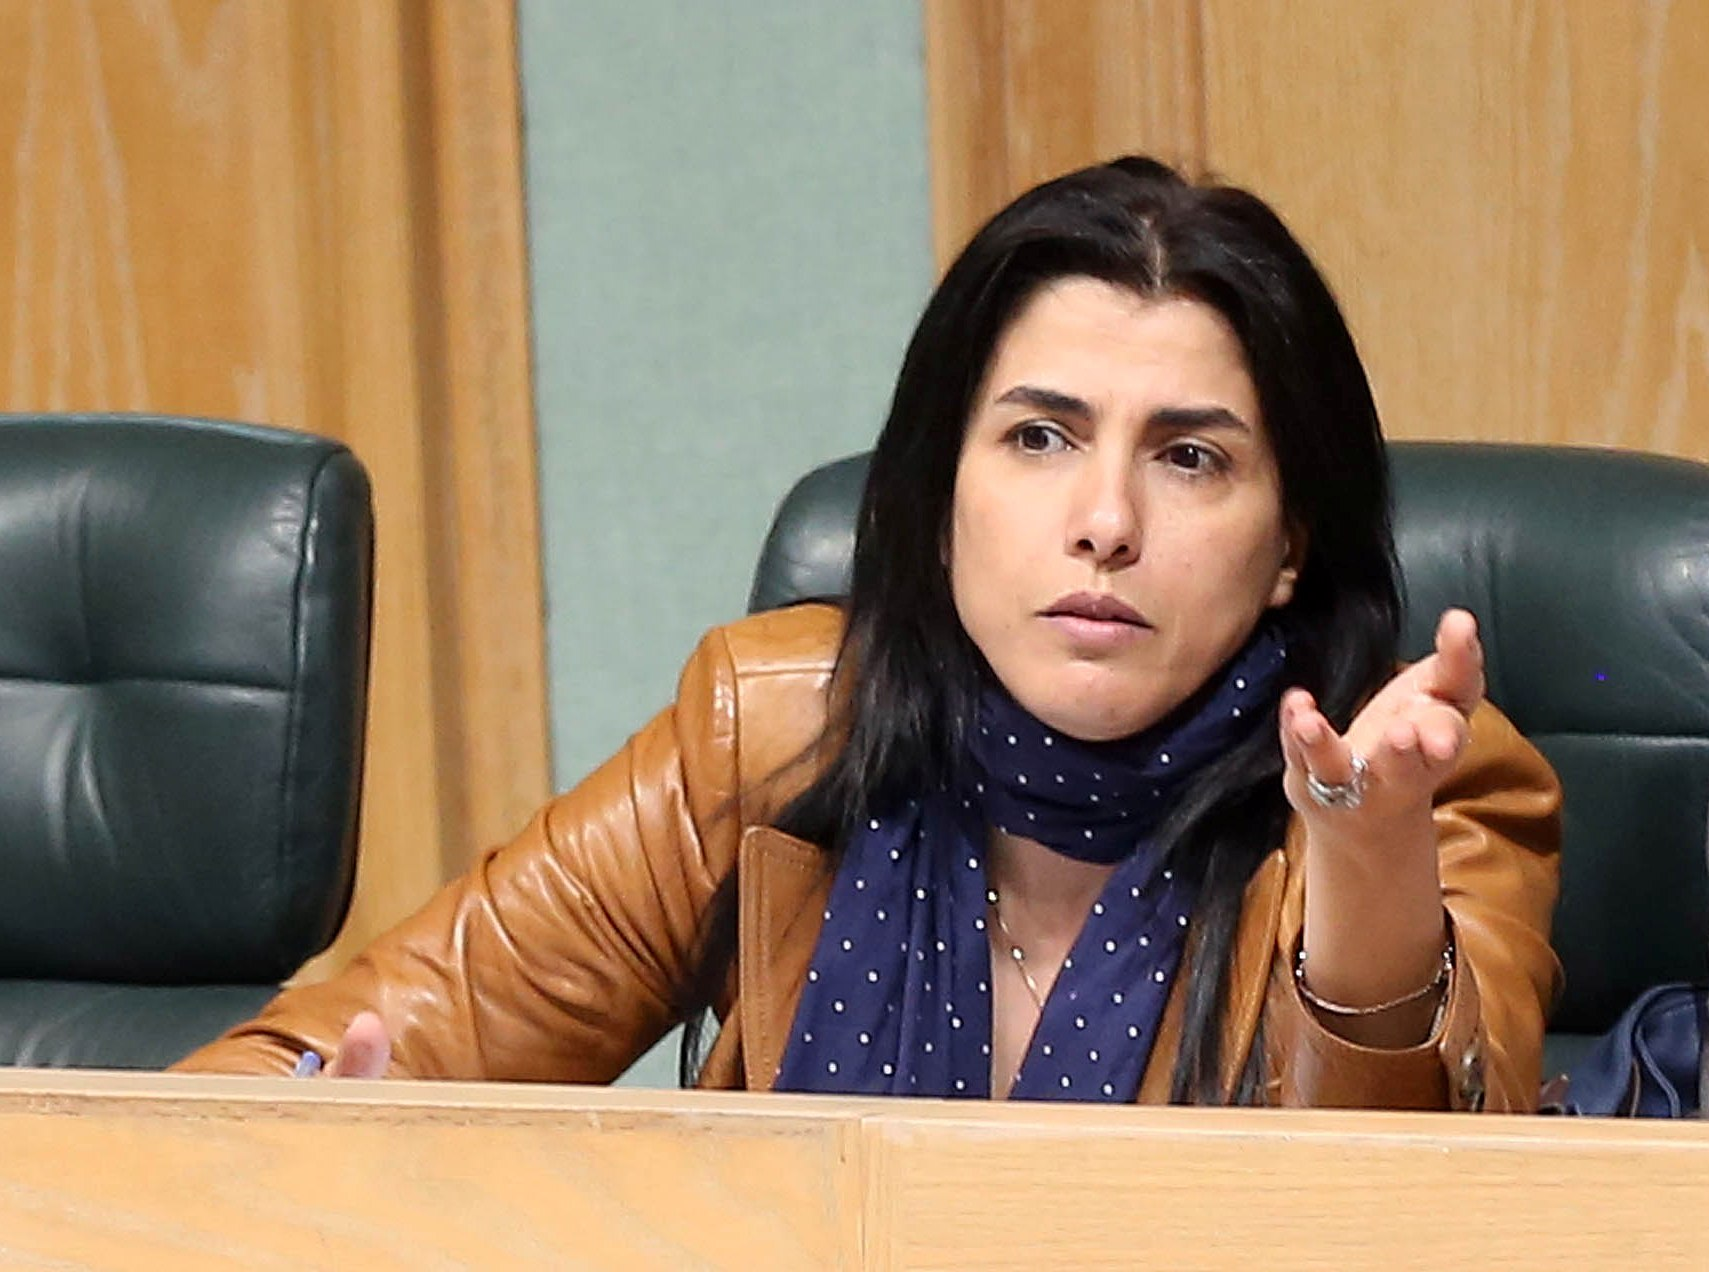 Hind al-Fayez and the challenges for reform in Jordan